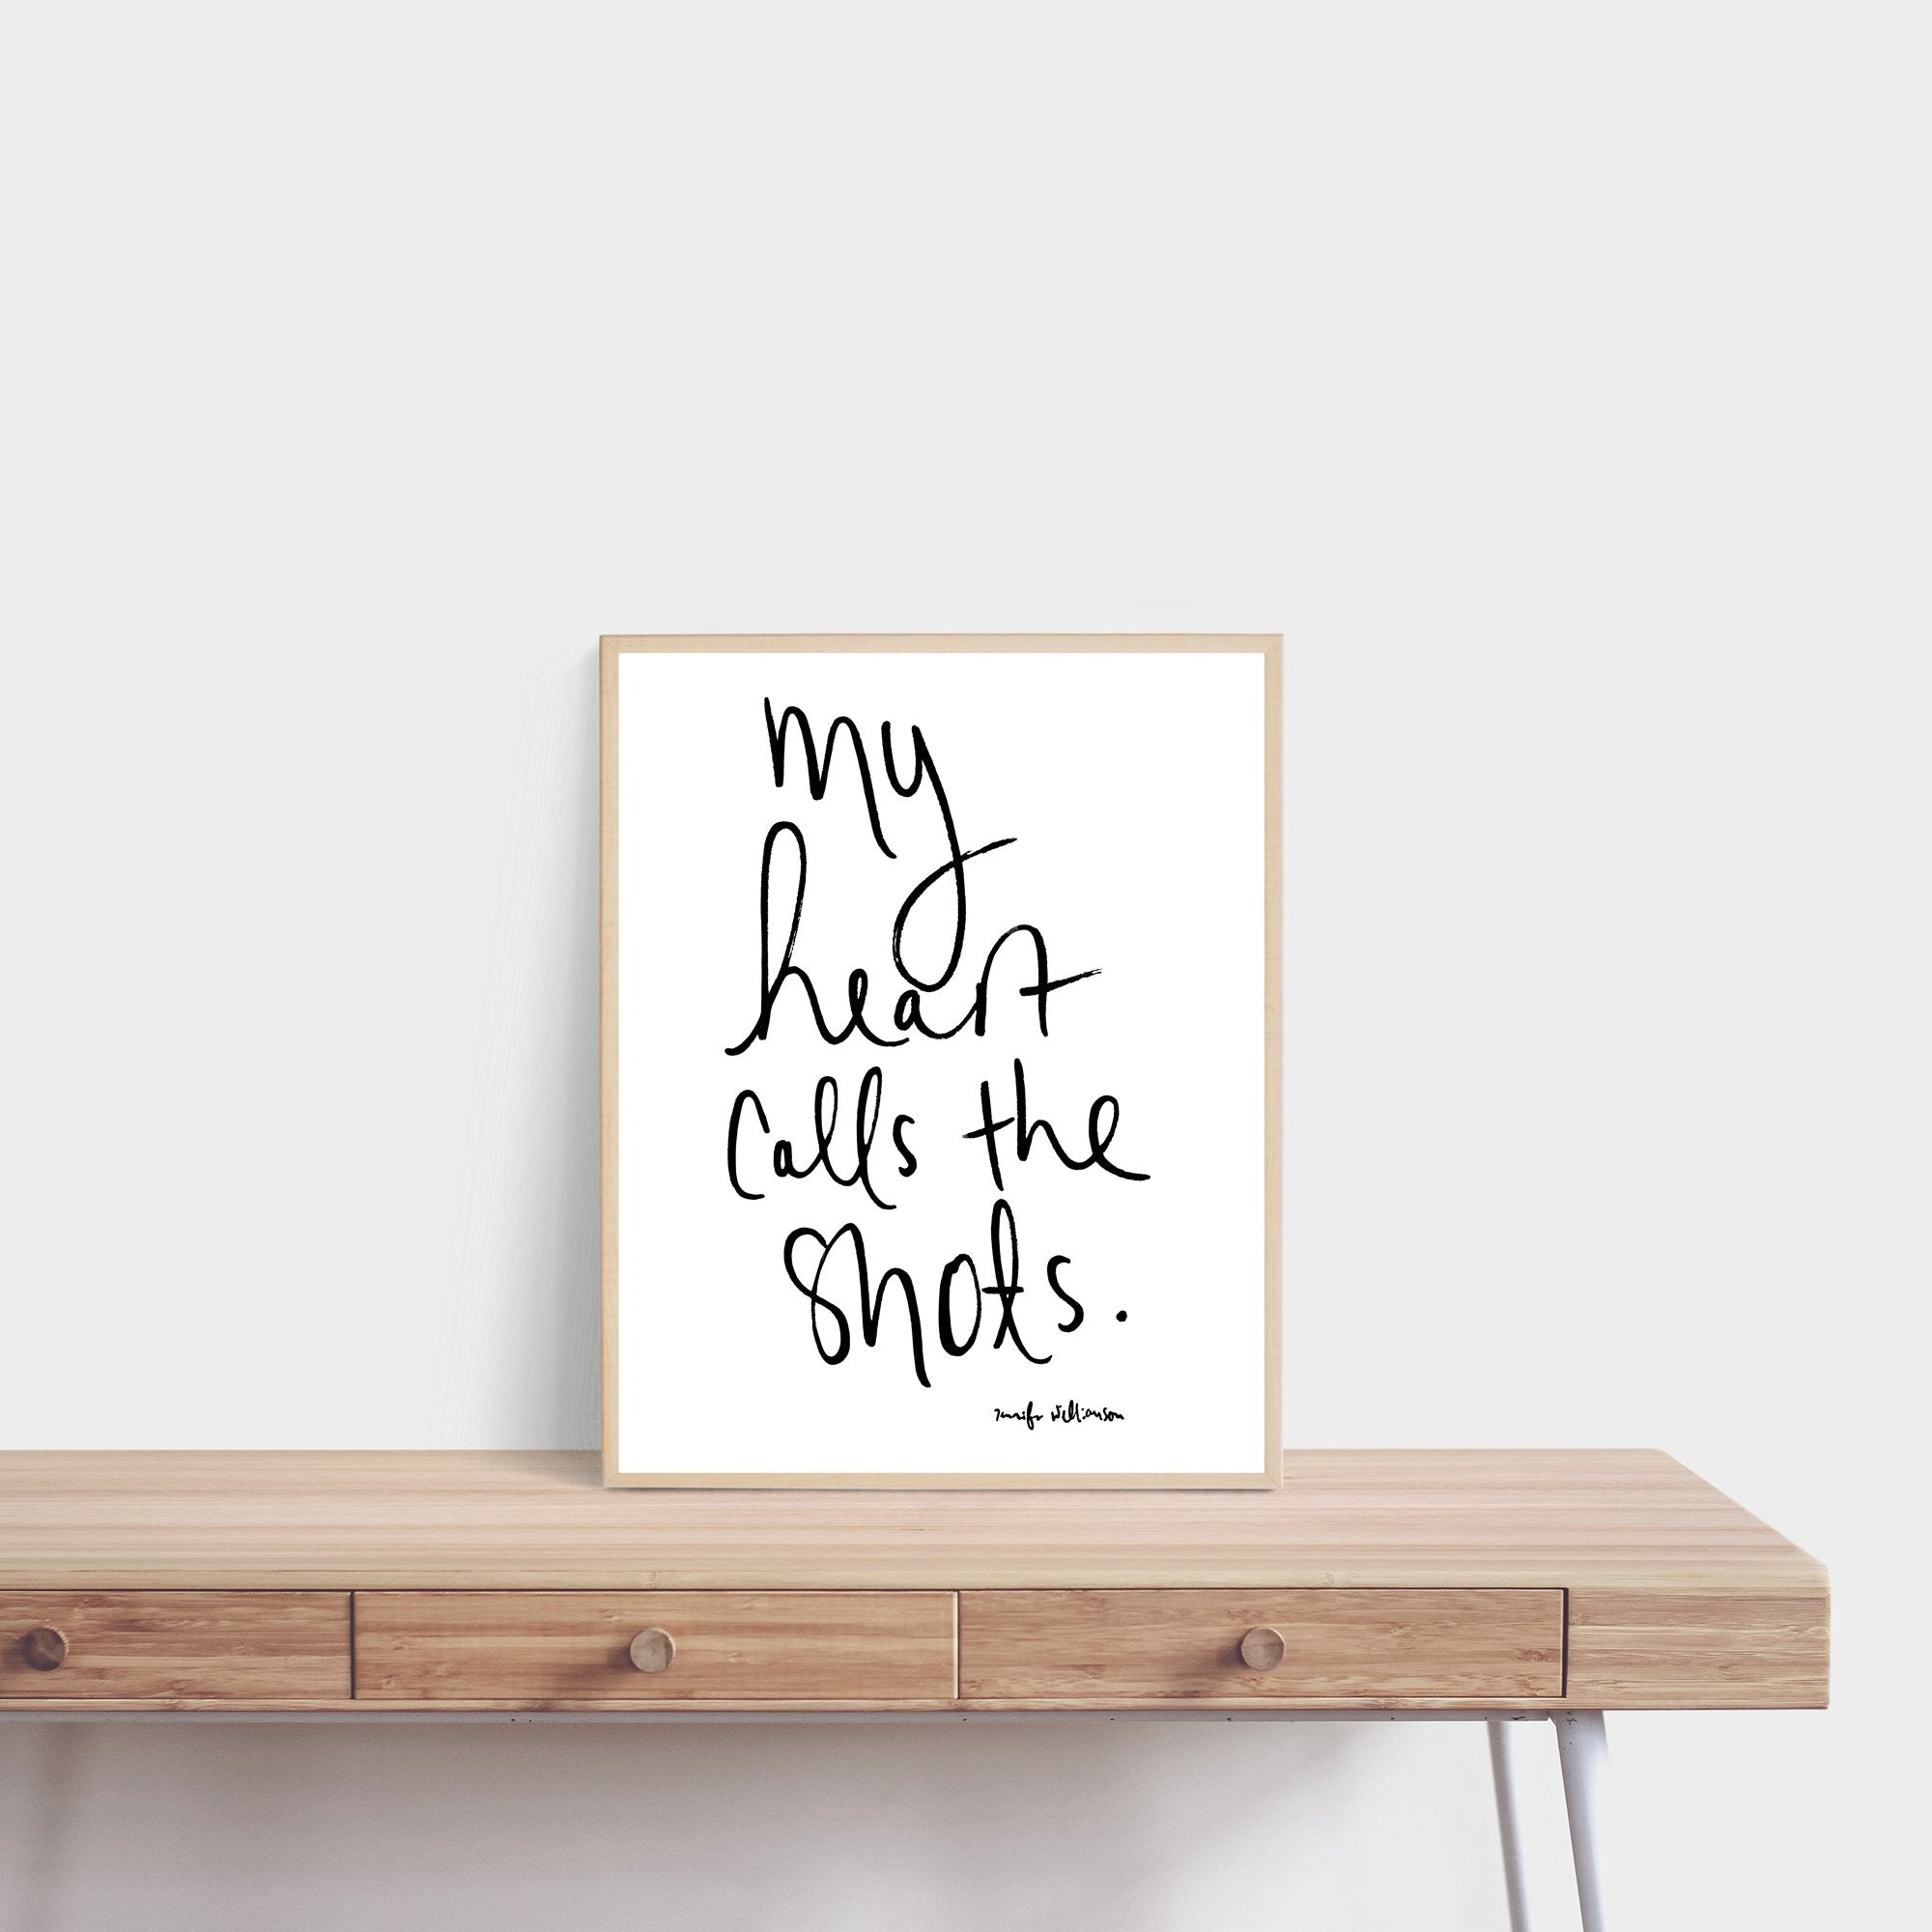 My Heart Calls The Shots Hand Lettered Affirmation Art Print